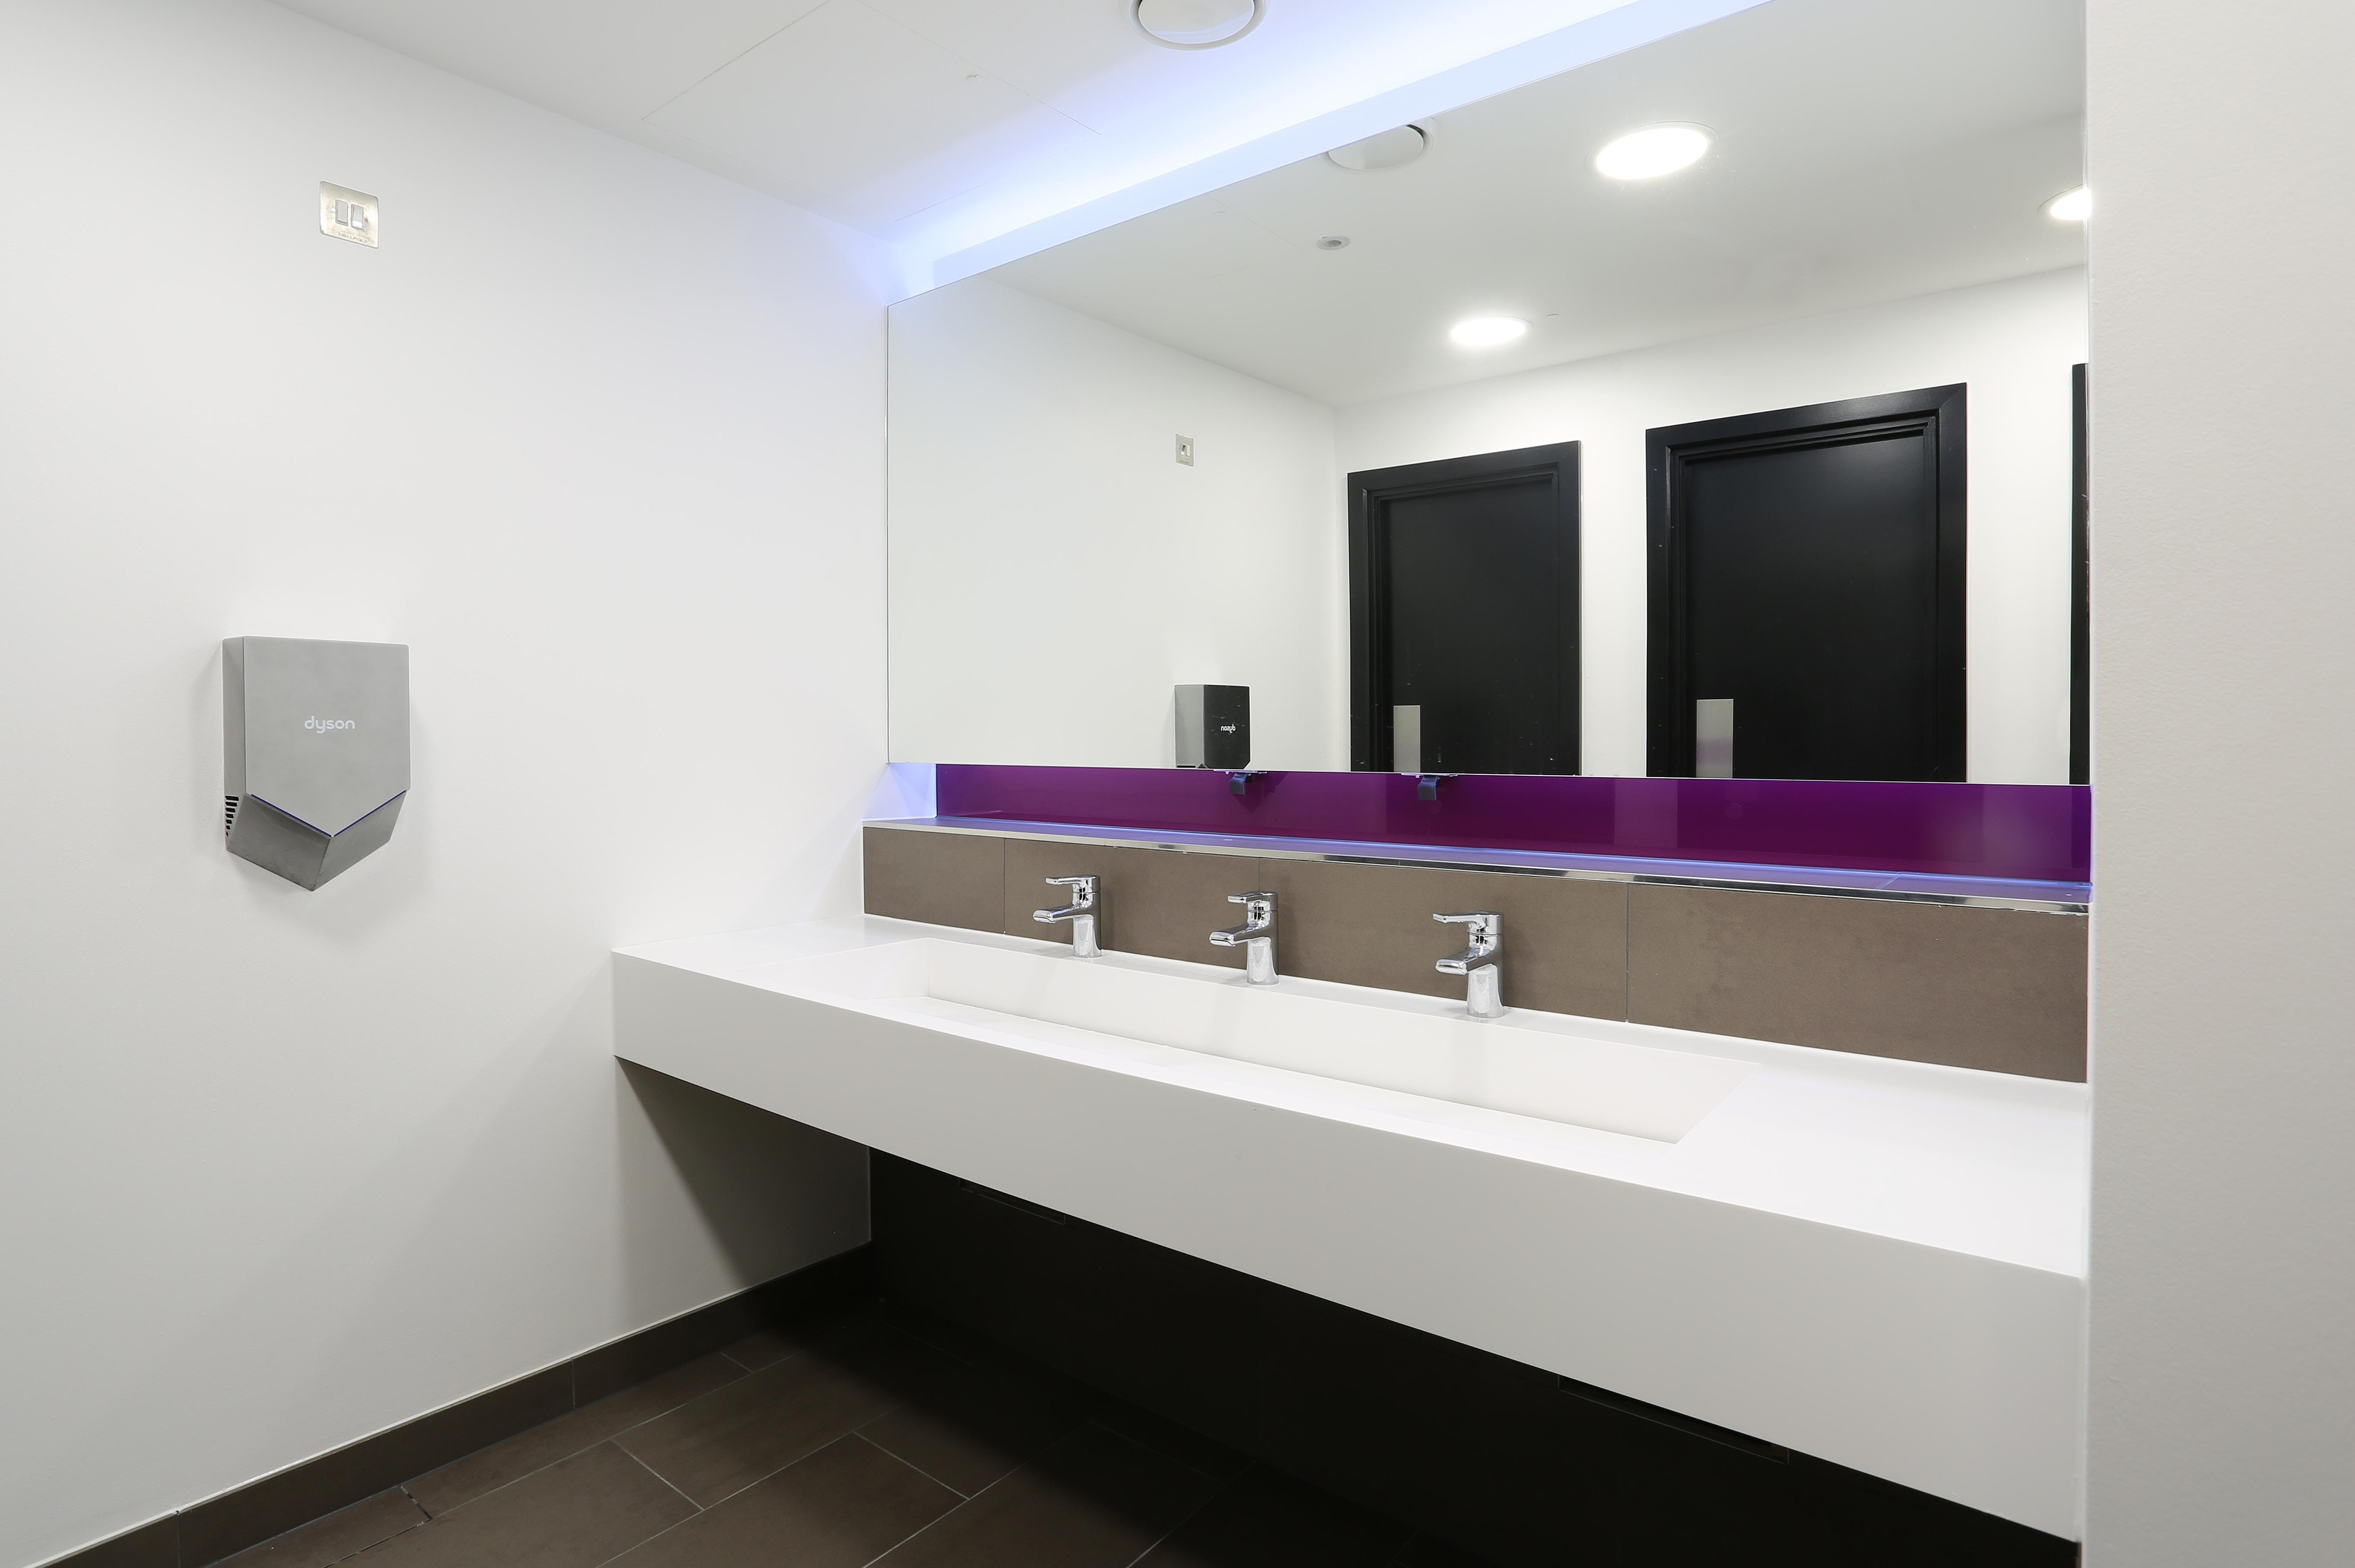 2200 Renaissance, Basing View, Basingstoke, Offices To Let - toilets.jpg